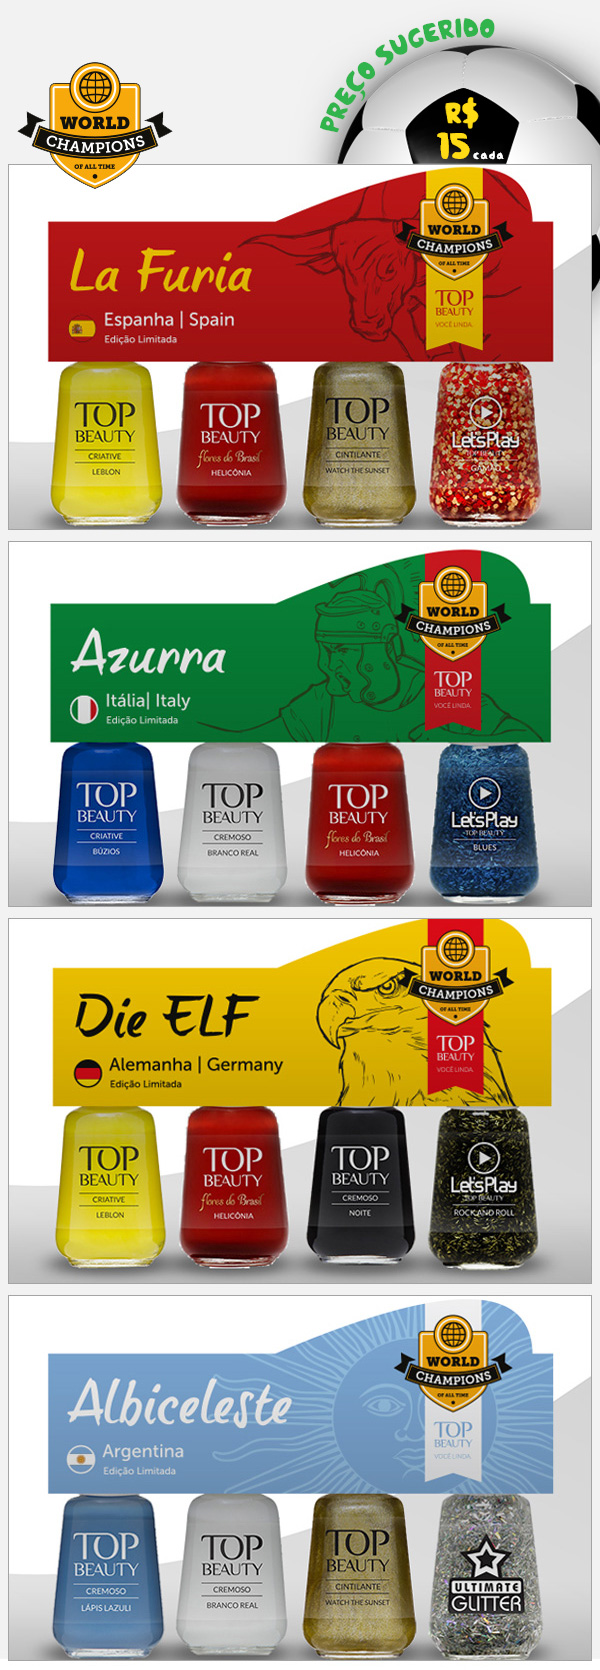 kit-especiais-copa-mundo-2014-top-beauty